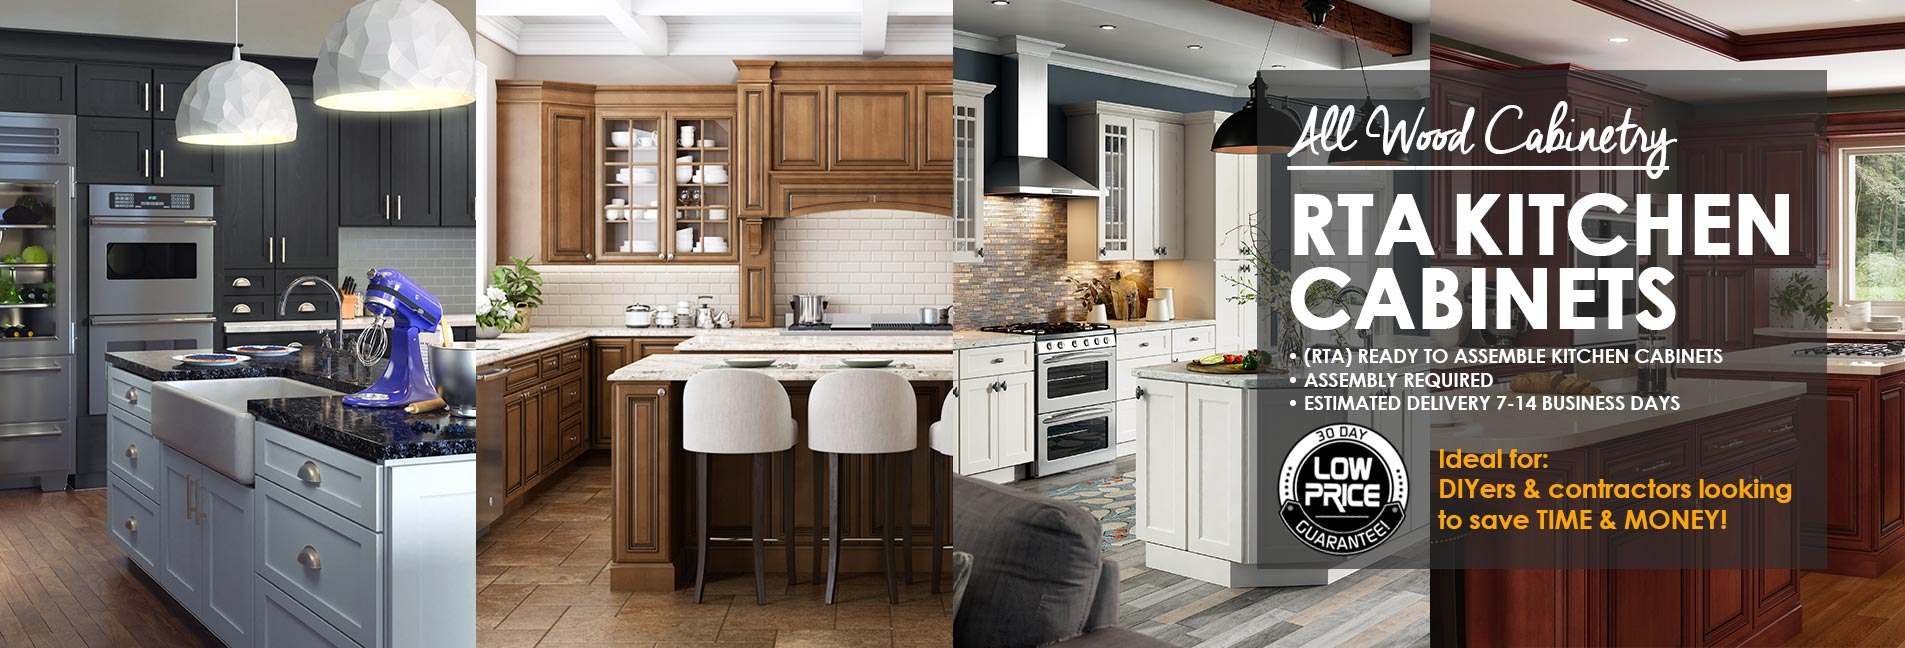 rta kitchen cabinets kitchen cabinets all wood affordable kitchen cabinets wood kitchen      rh   kabinetking com